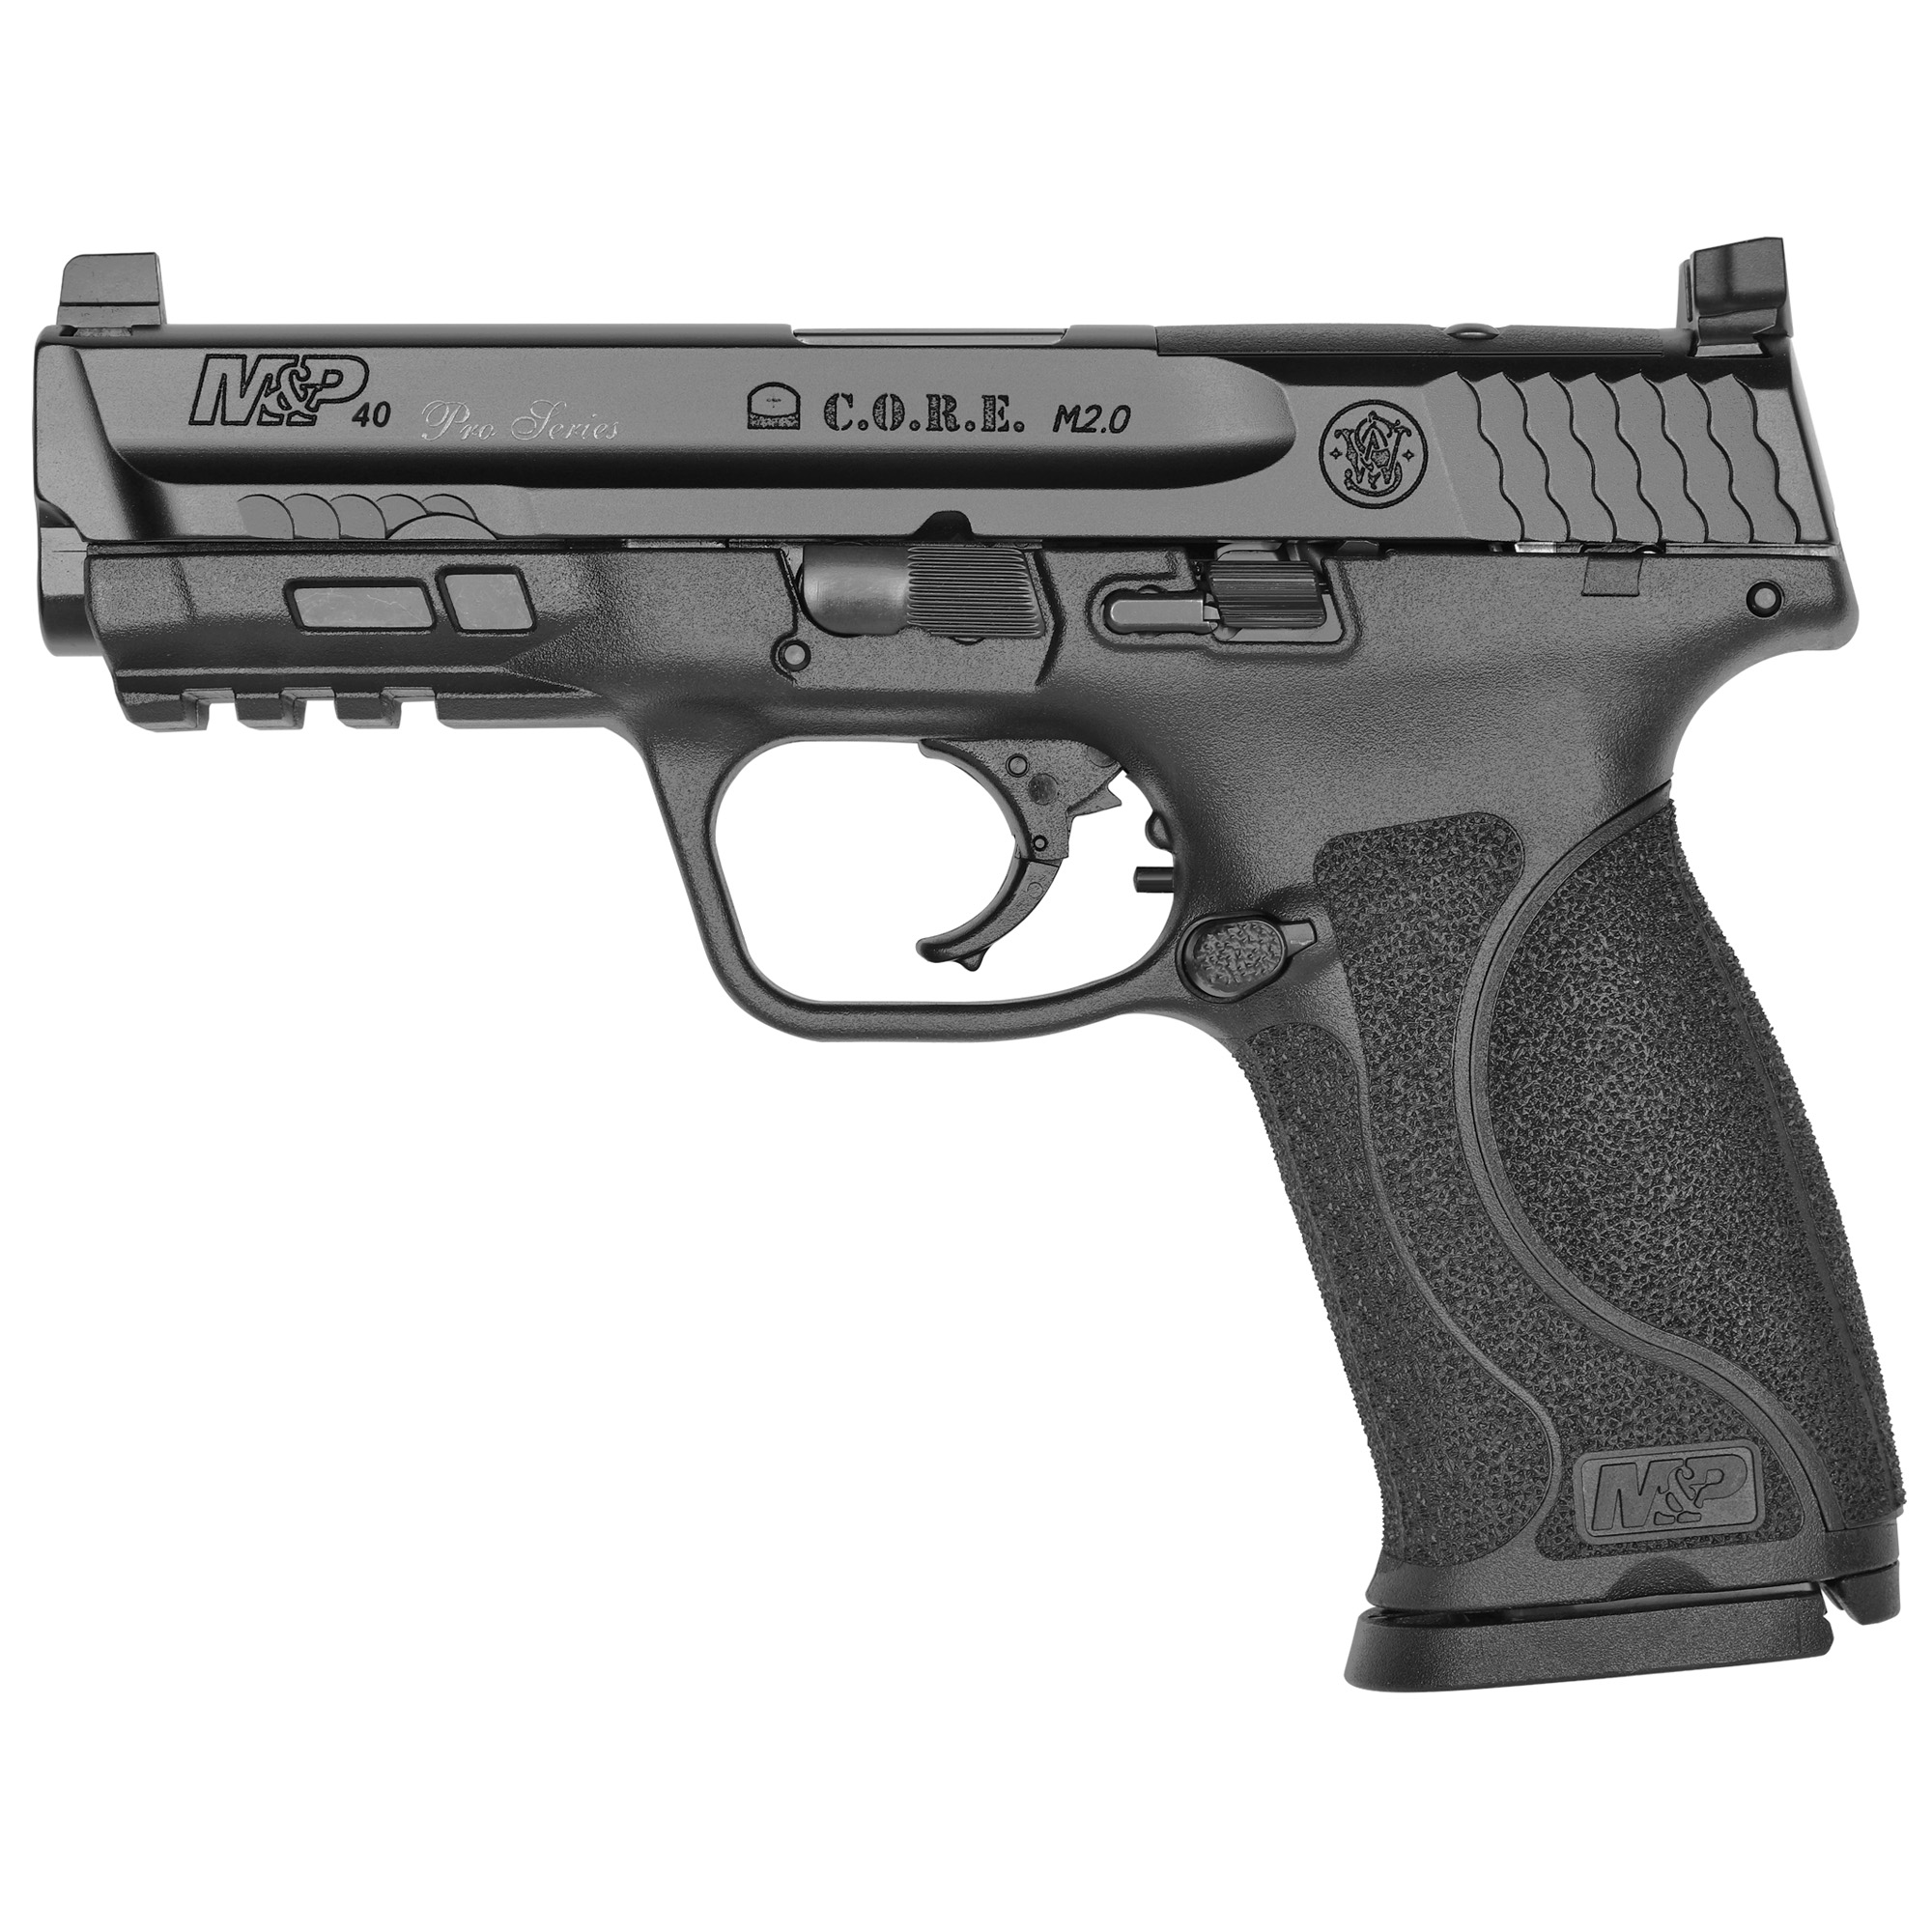 Smith and Wesson M&P40 M2.0 Pro Series Core 40 S&W